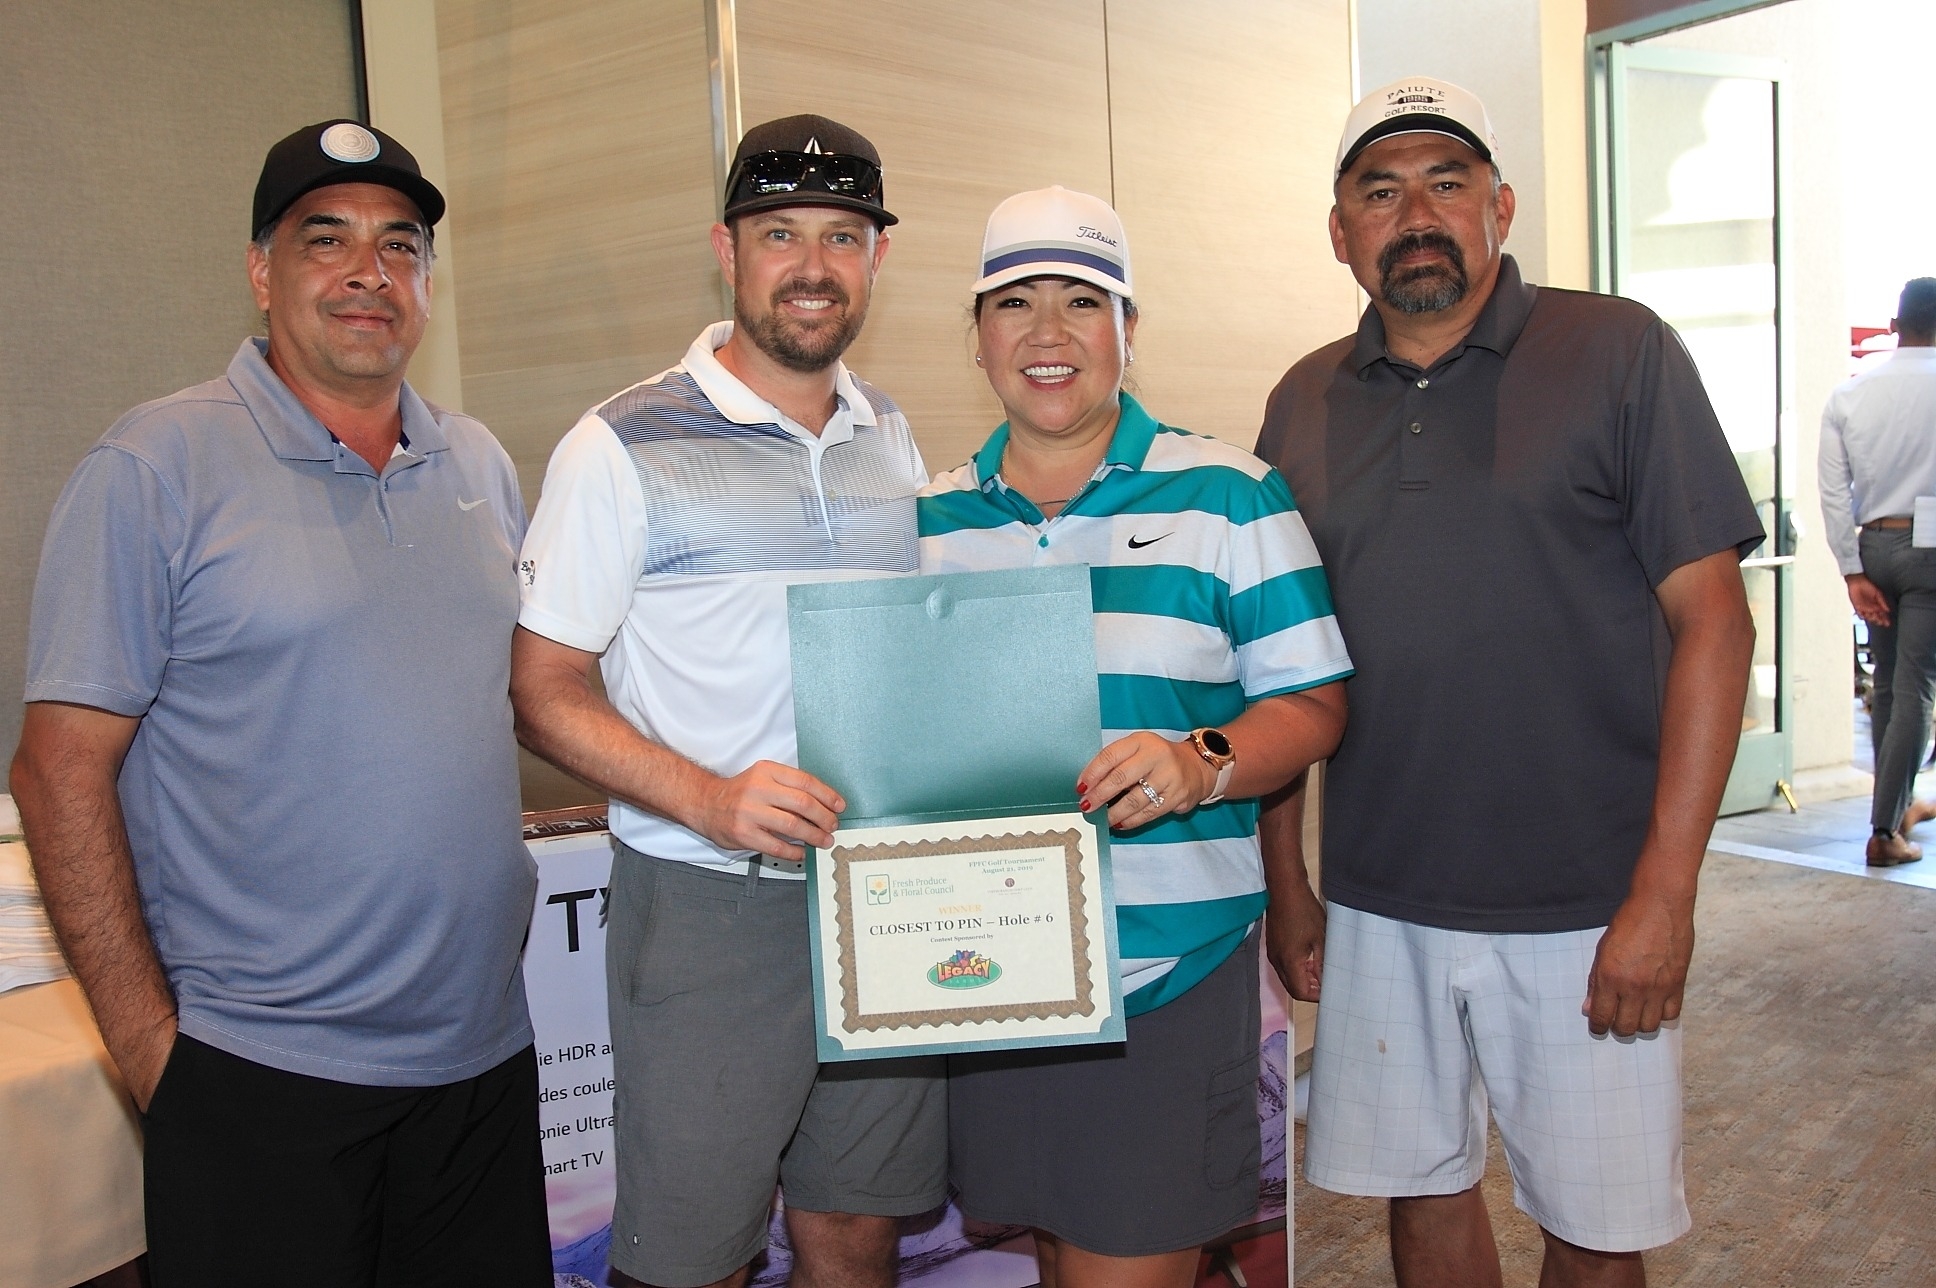 Closest to Pin Winner, Justin Whitcomb of Del Monte Fresh Produce with Cesar Valenzuela of Albertsons/Safeway/Vons, Mihae Finnie with Del Monte Fresh Produce, and Jeff Roa from Albertsons/Safeway/Vons.